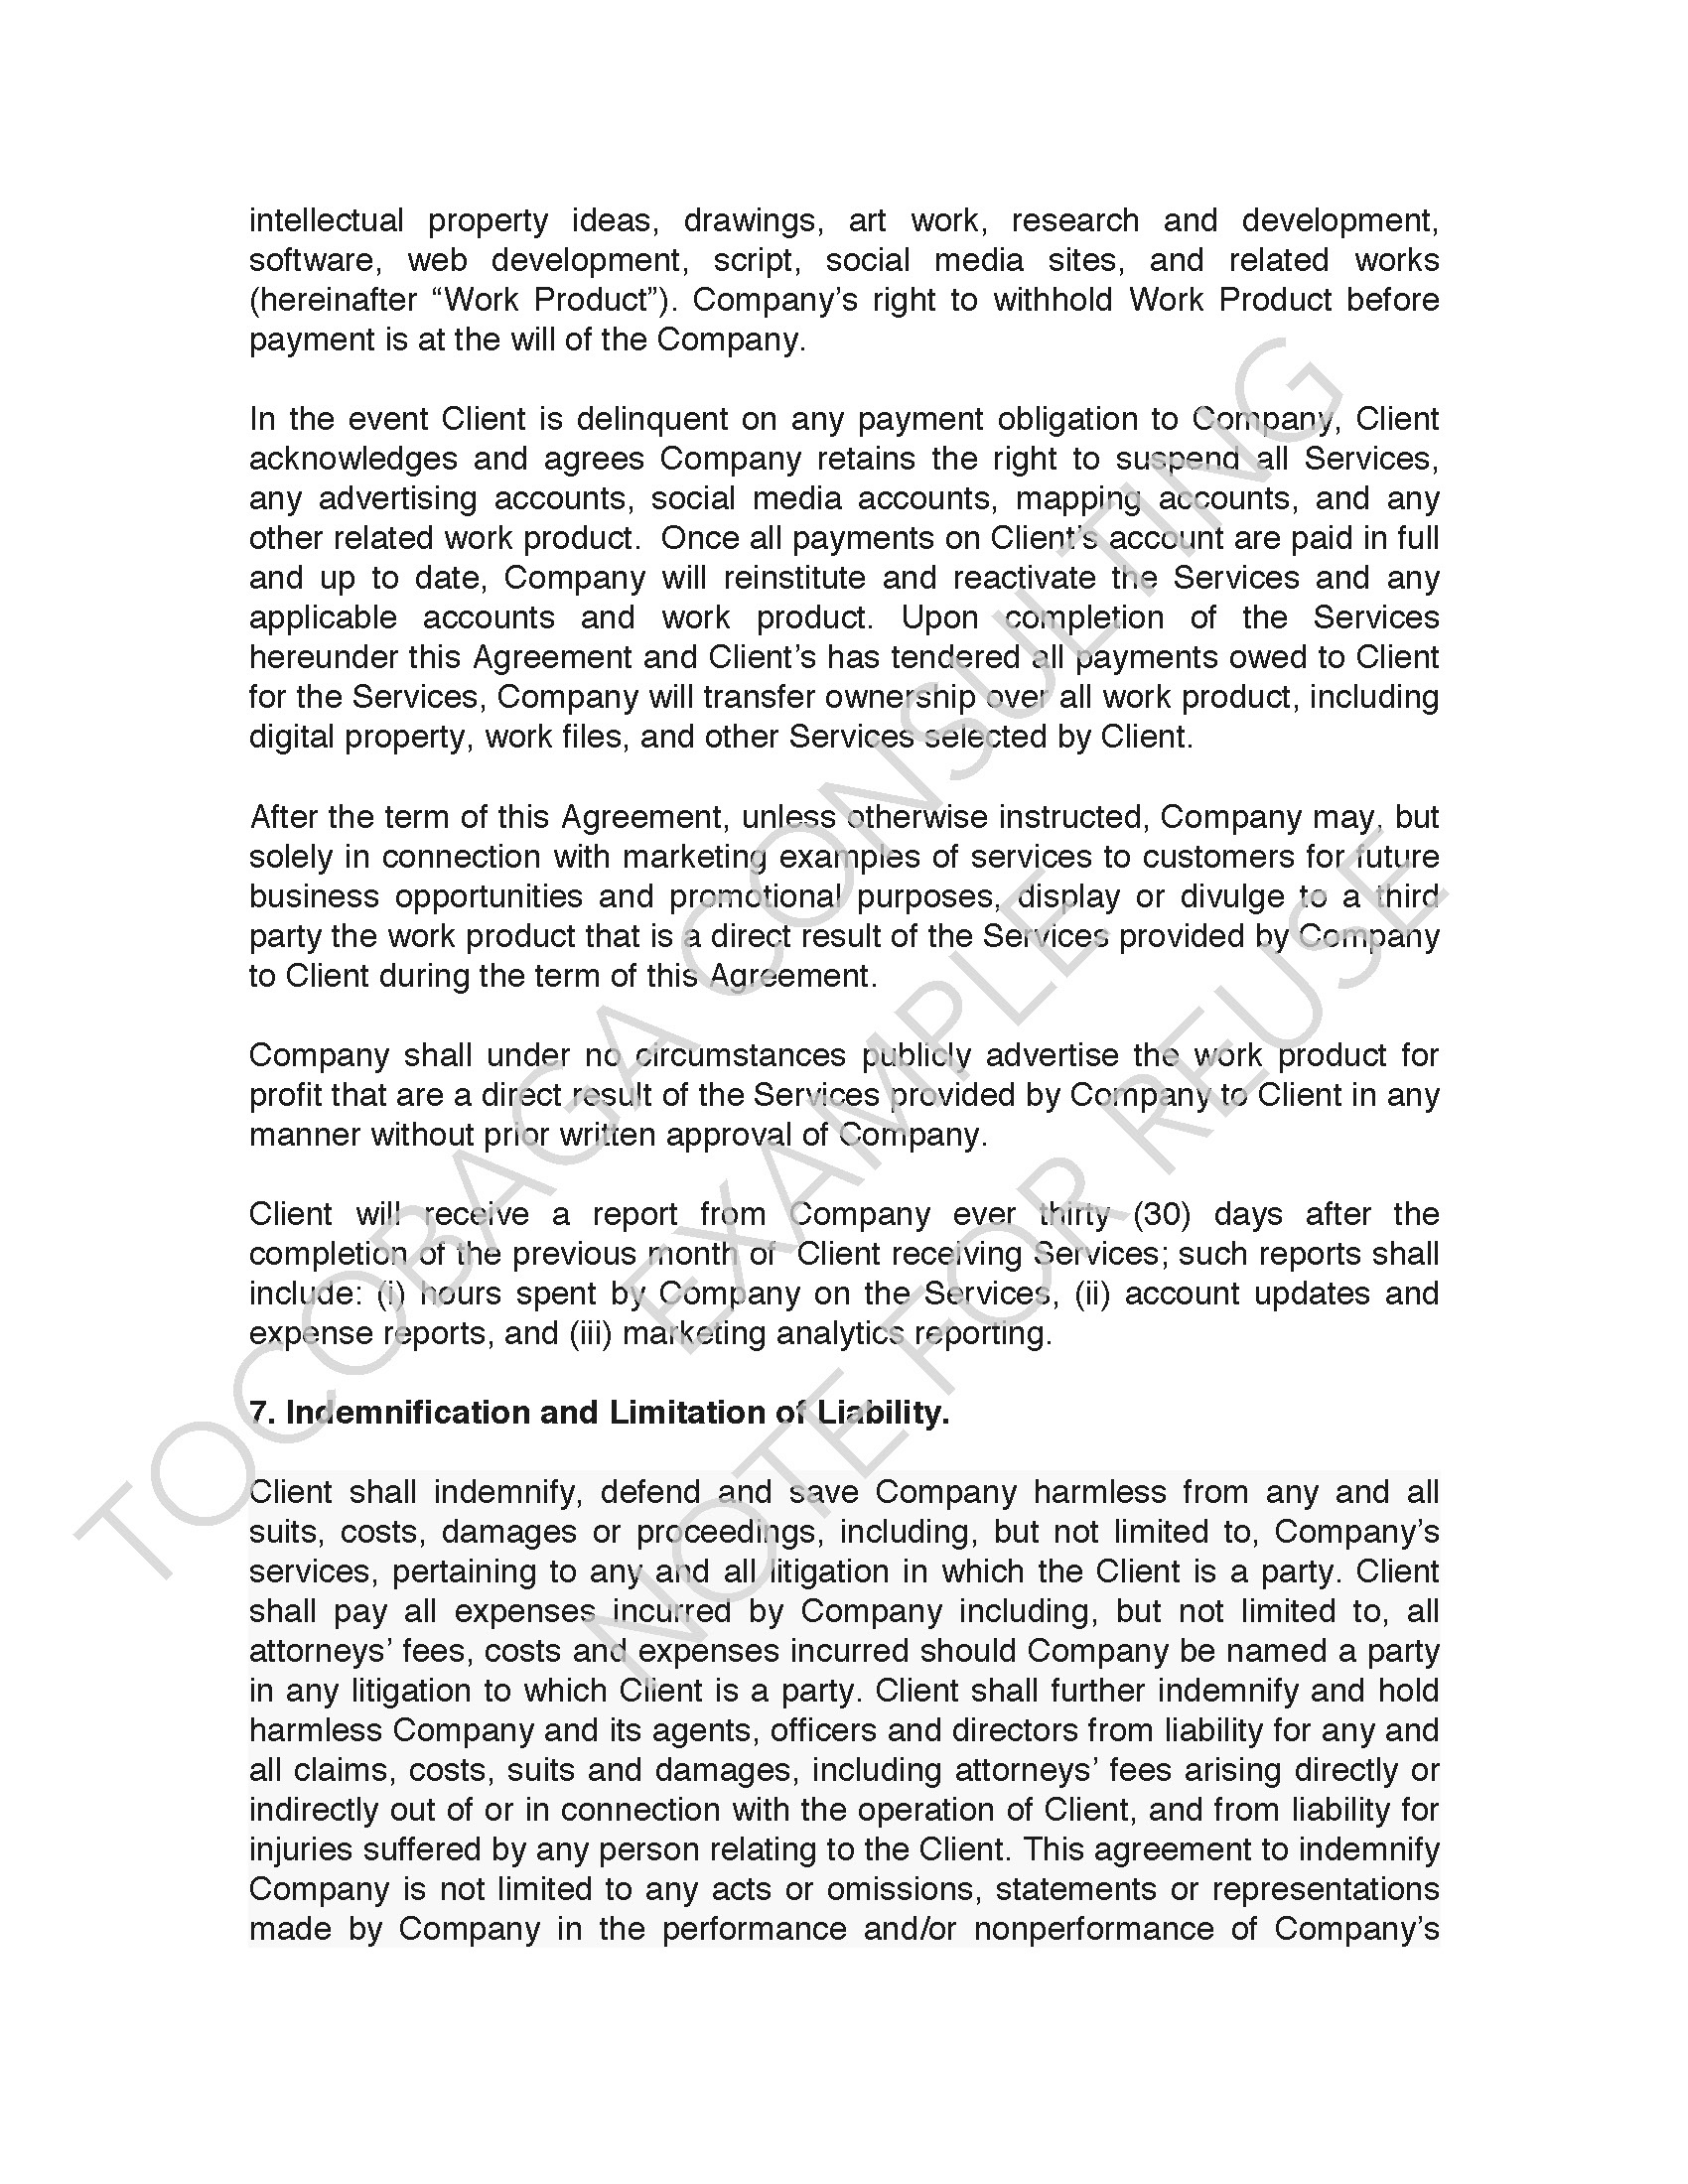 Company Services Agreement EXAMPLE_Page_04.jpg